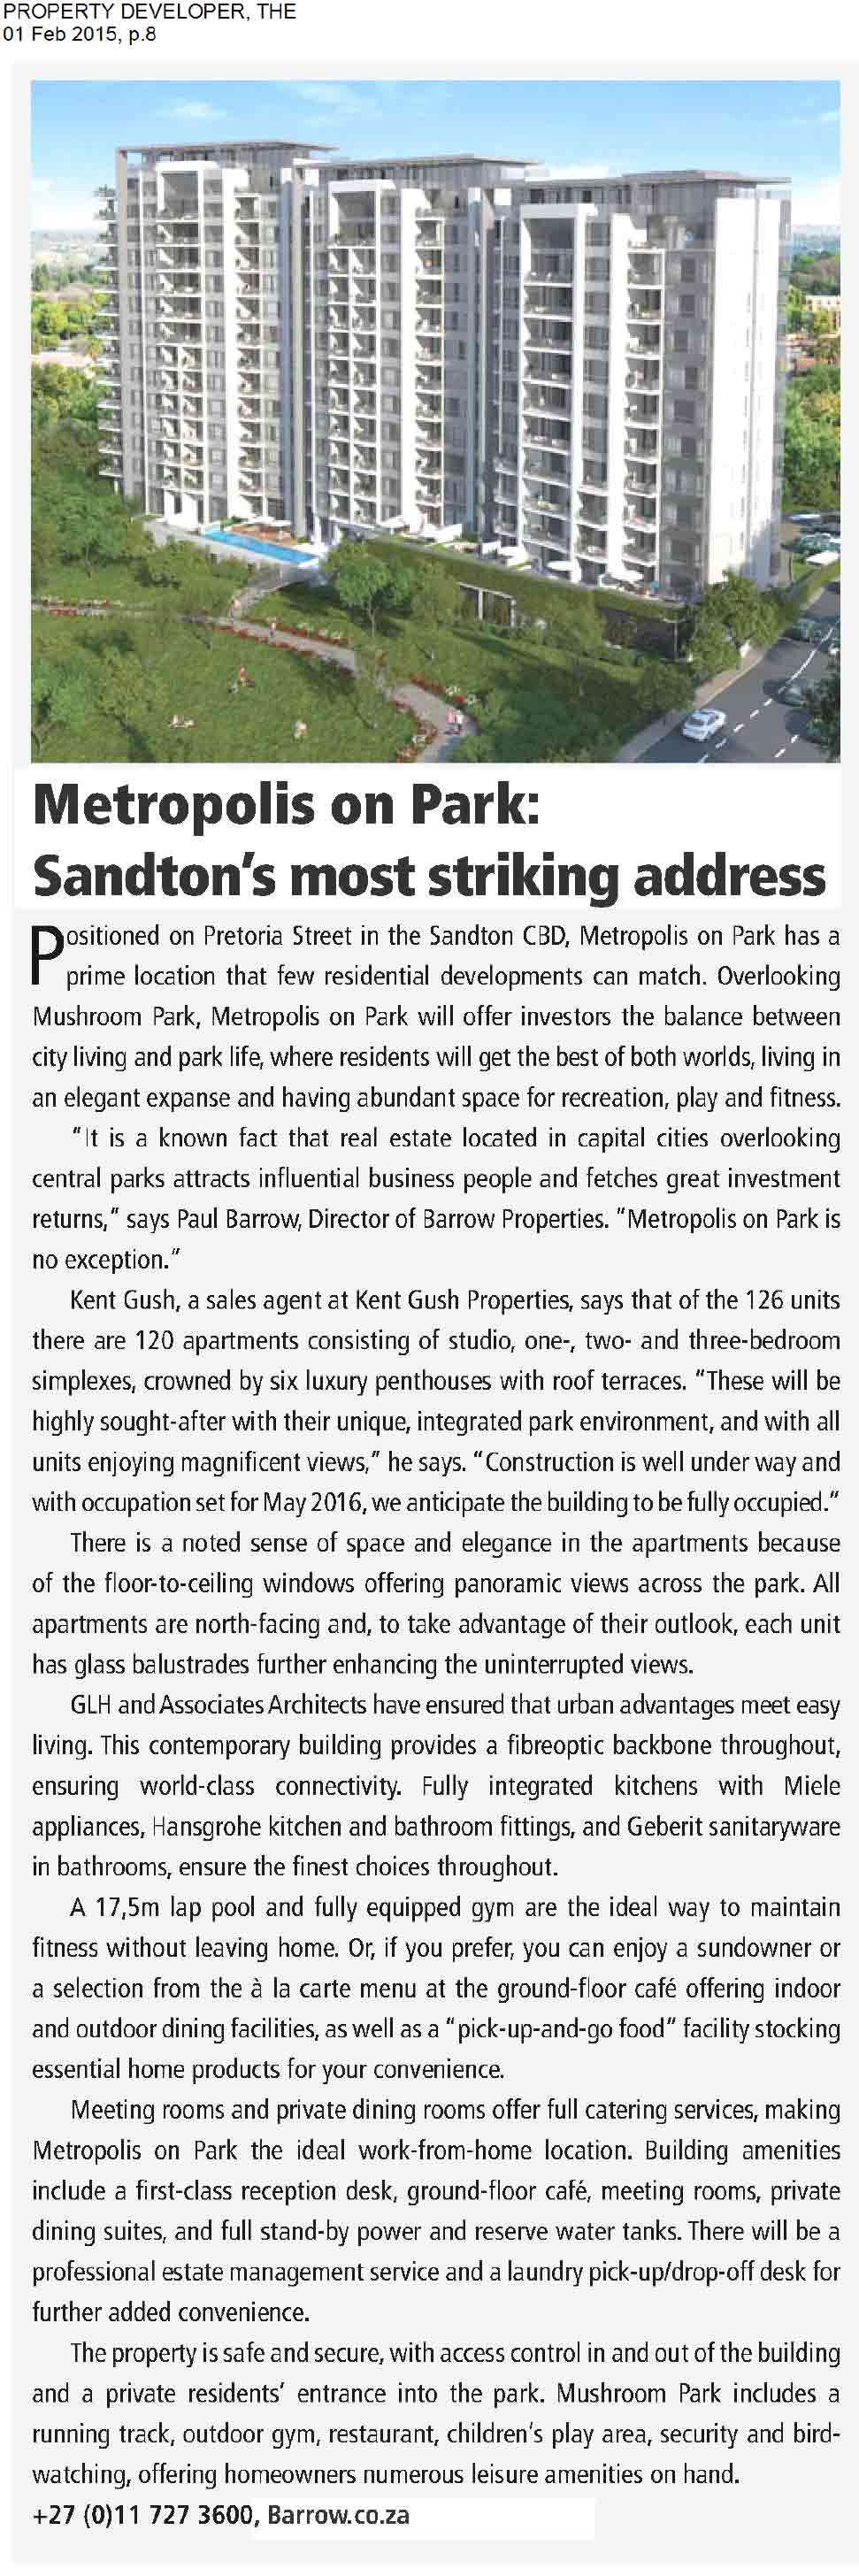 Metropolis-on-Park-Sandton's-most-striking-address